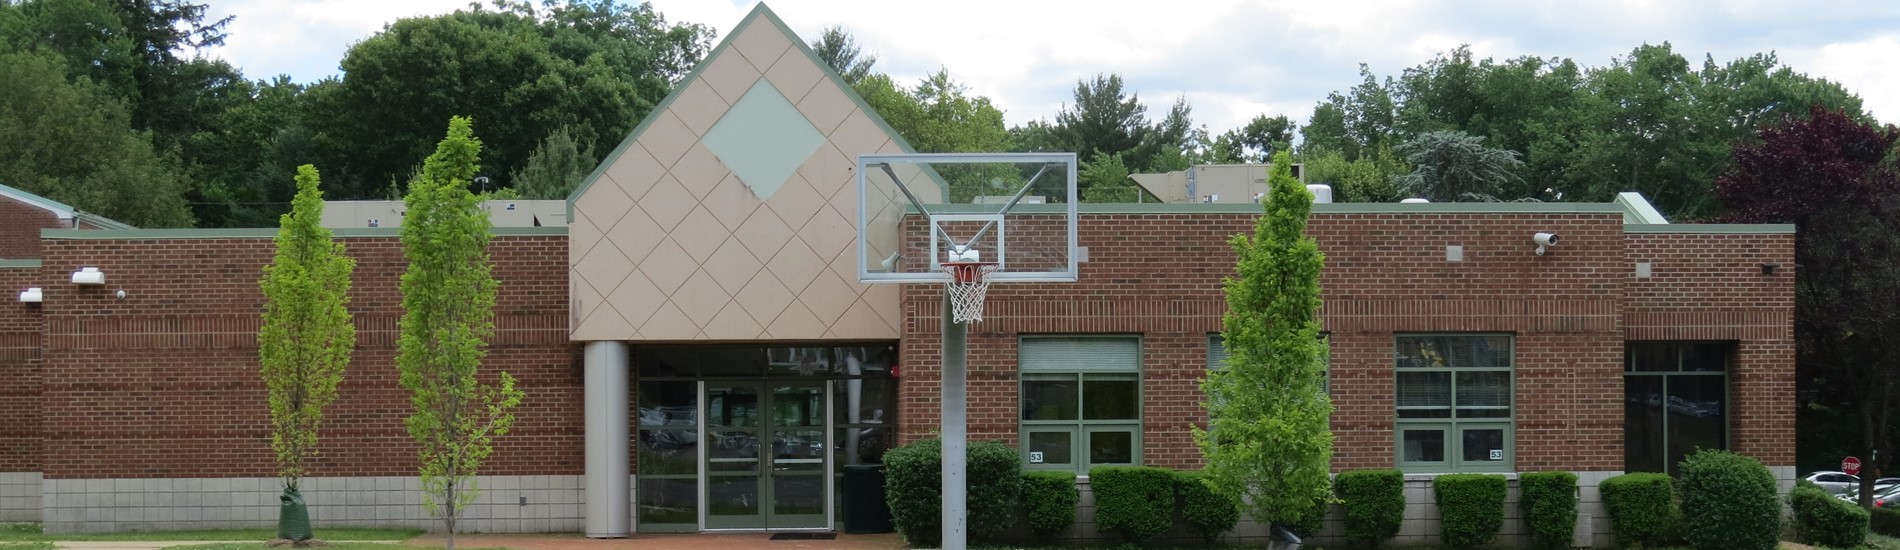 Woodcliff Middle School - back view of Media Center with basketball court